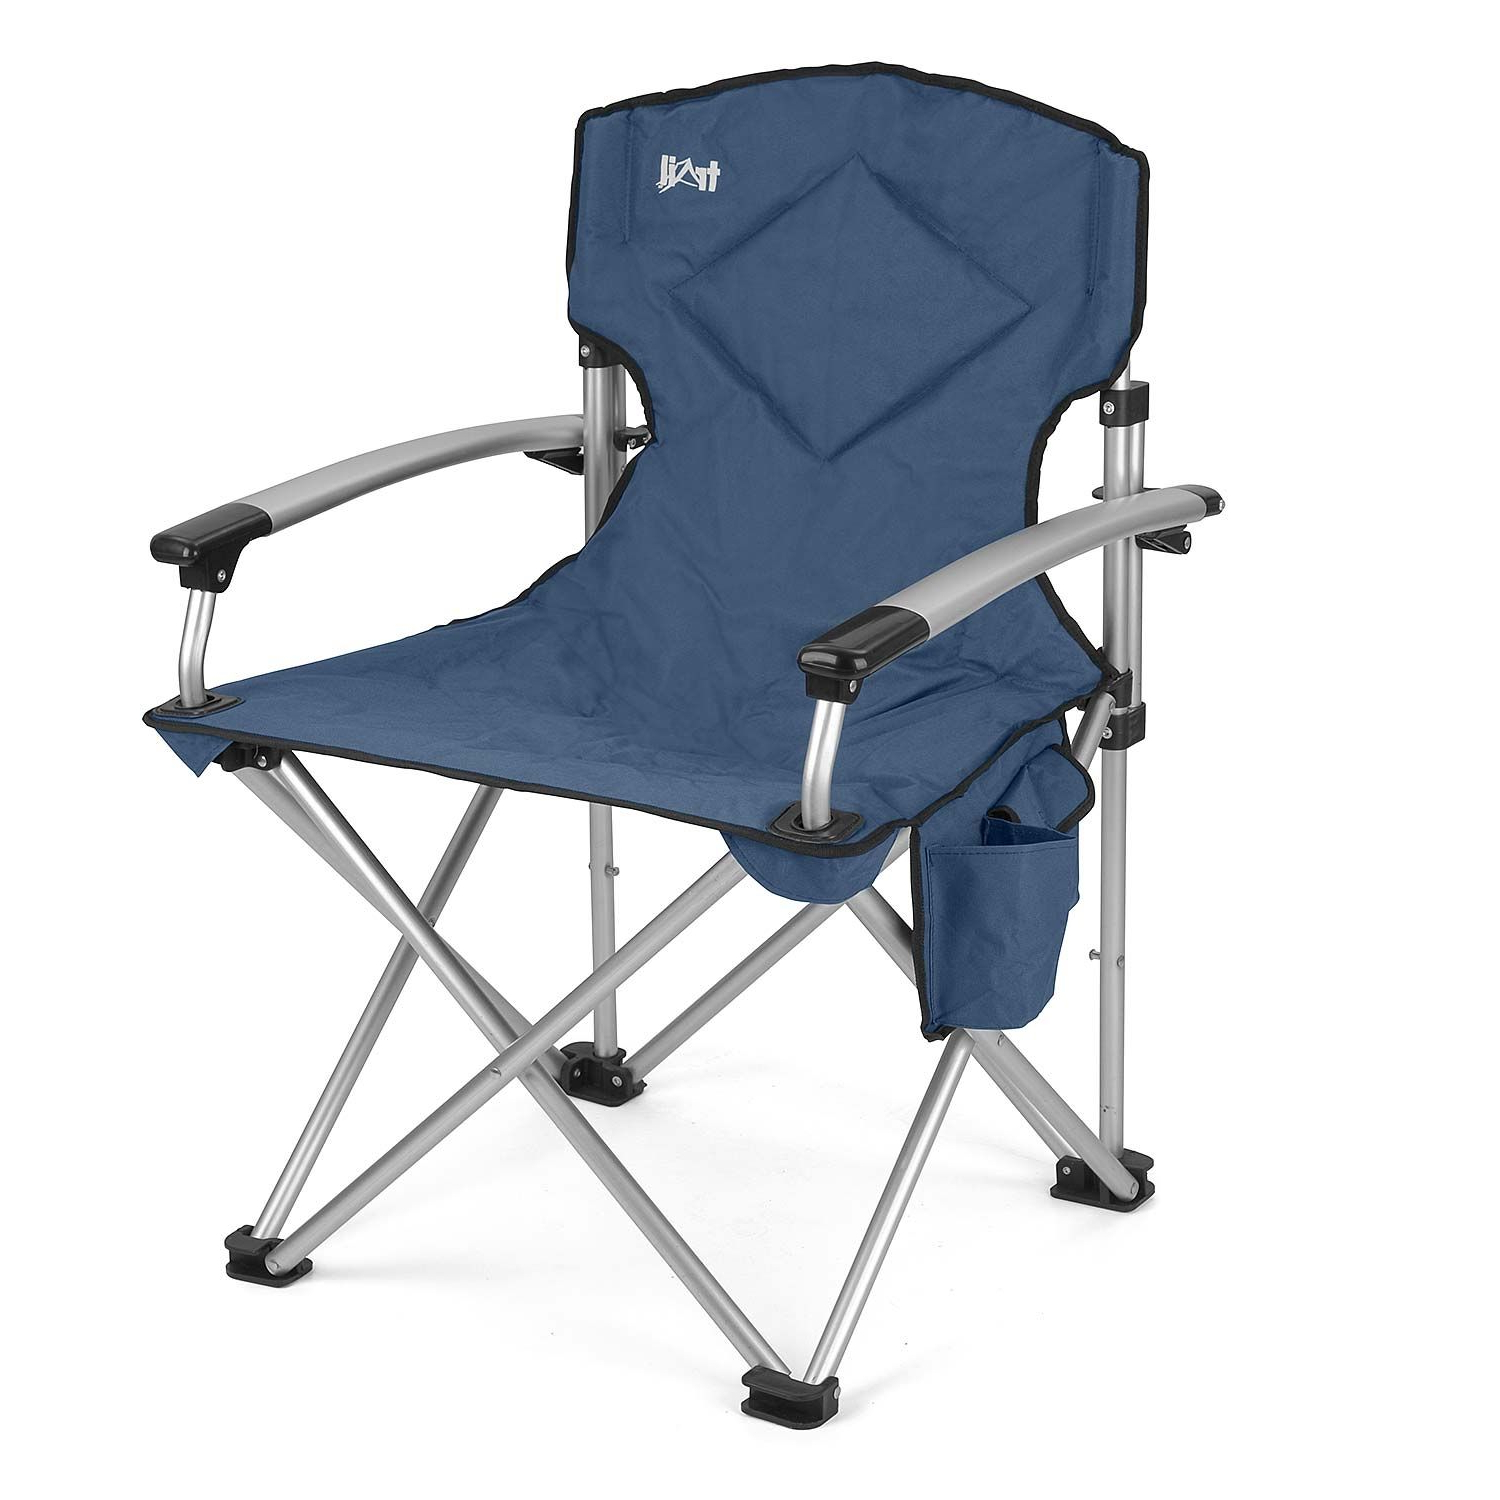 Fashionable Iron Frame Locking Portable Folding Chairs Intended For Trail Ultimate Folding Camping Chair (View 20 of 25)